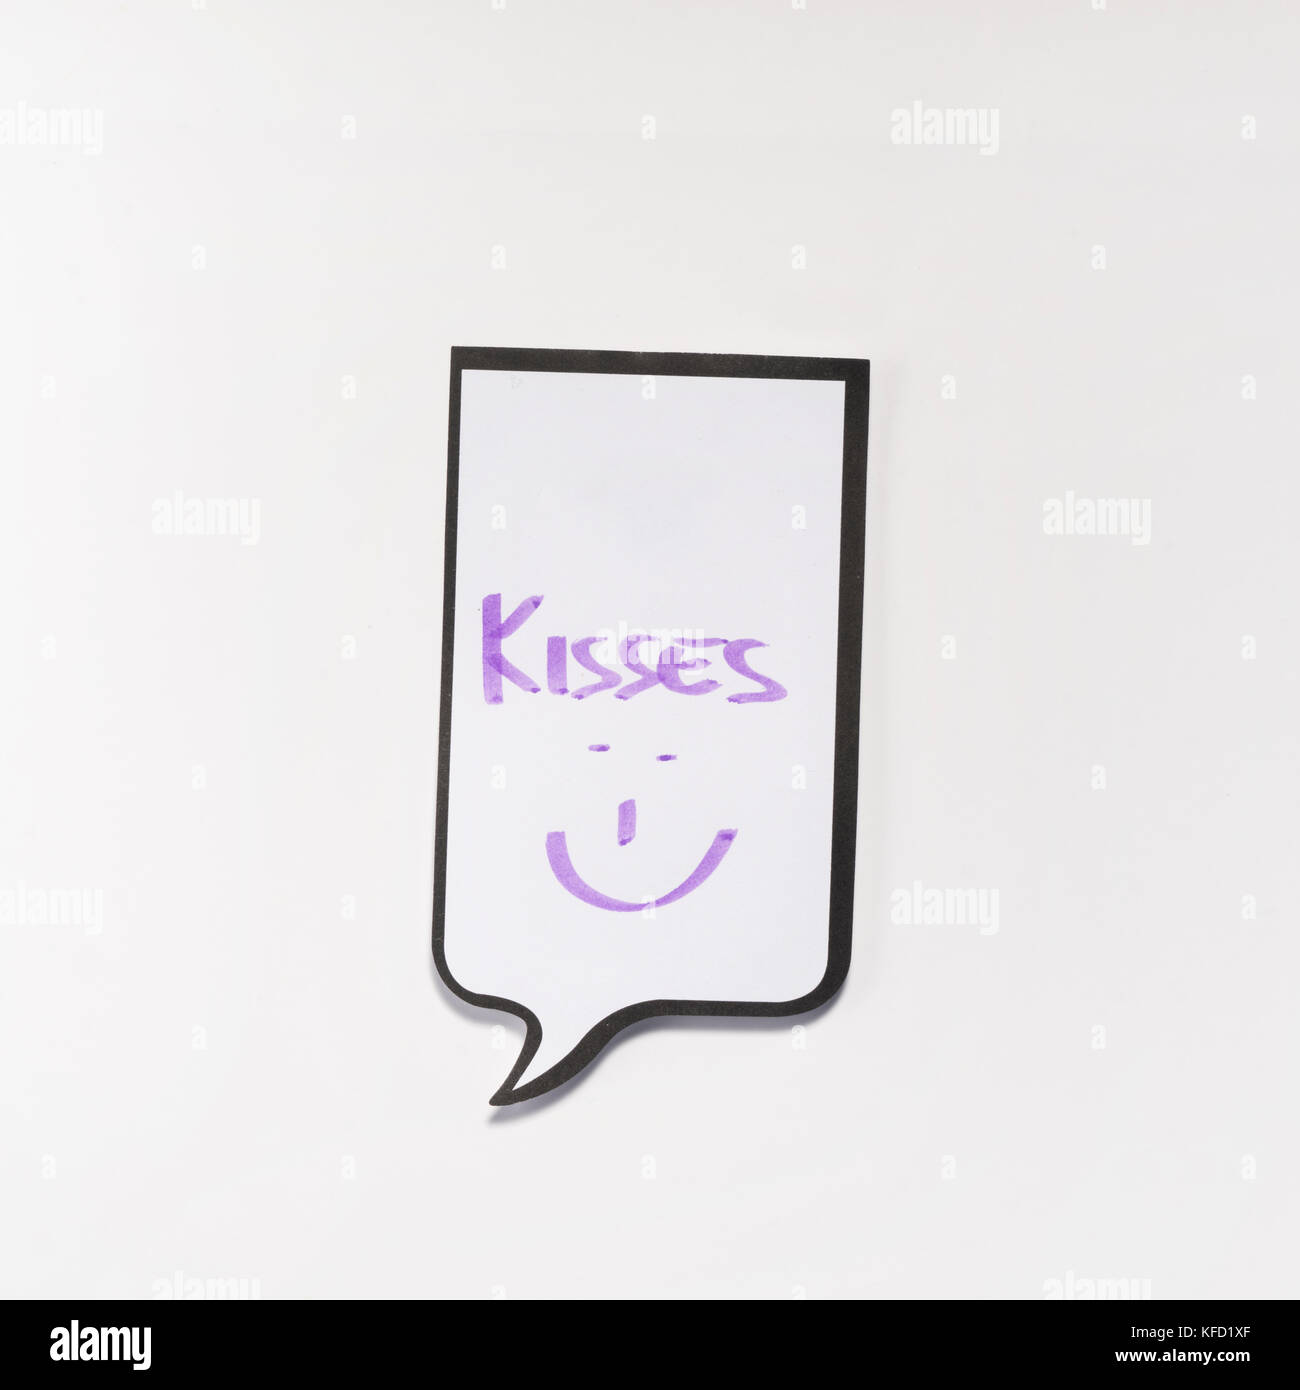 a white memo pad with the shape of a comic with the inscription 'kisses' - Stock Image